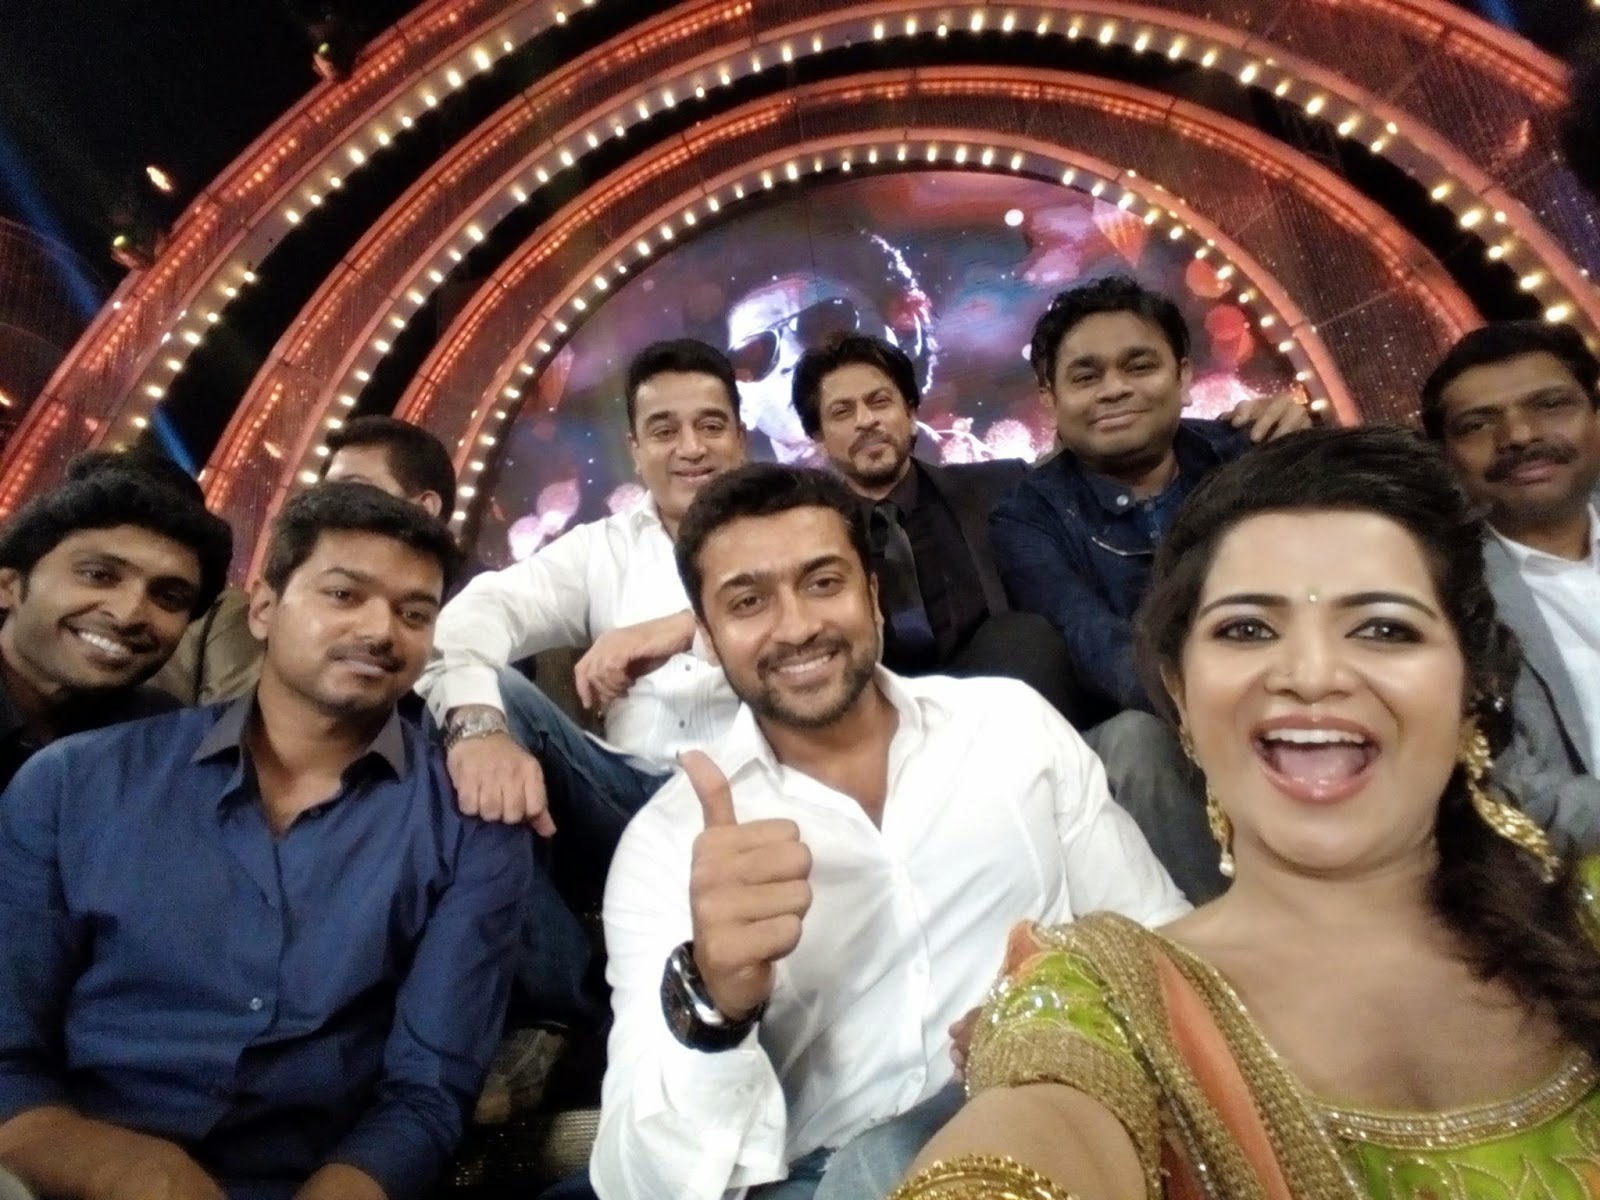 Surya new photos at Vijay Awards 2014 in HD - Actor Surya Masss Movie First  look Trailers Teaser Songs Posters Stills